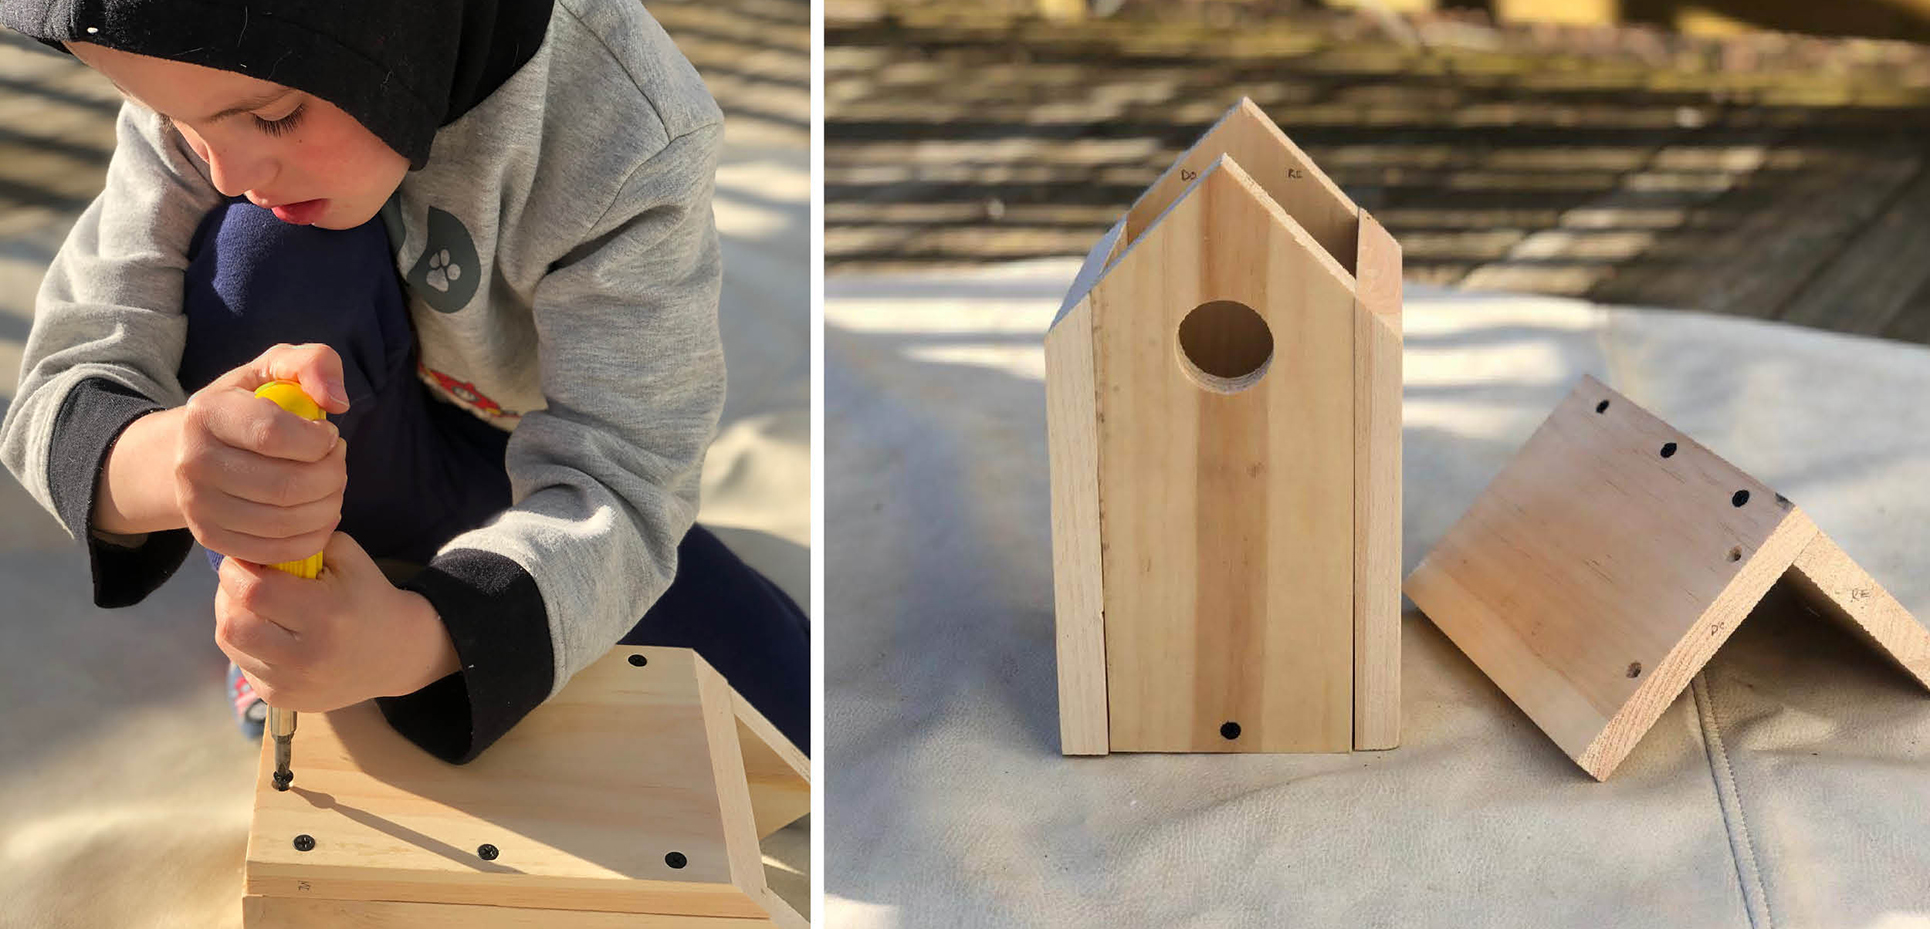 Young person in a hooded sweater assembles a birdhouse out of wood using a screwdriver.